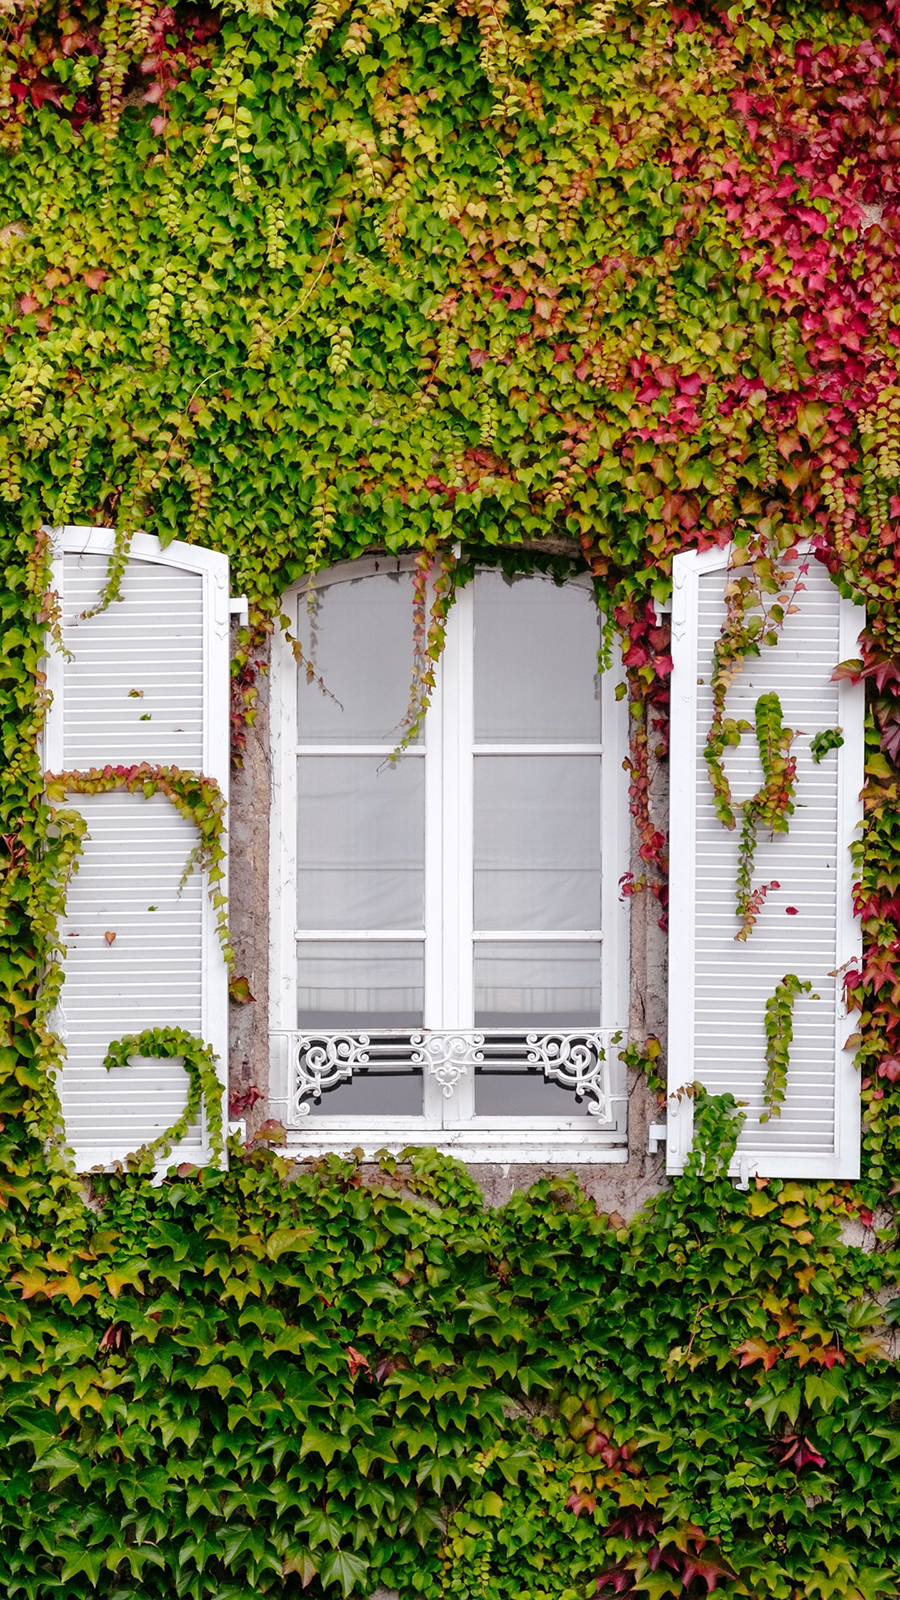 Window Foliage Facade Wallpapers Free Download